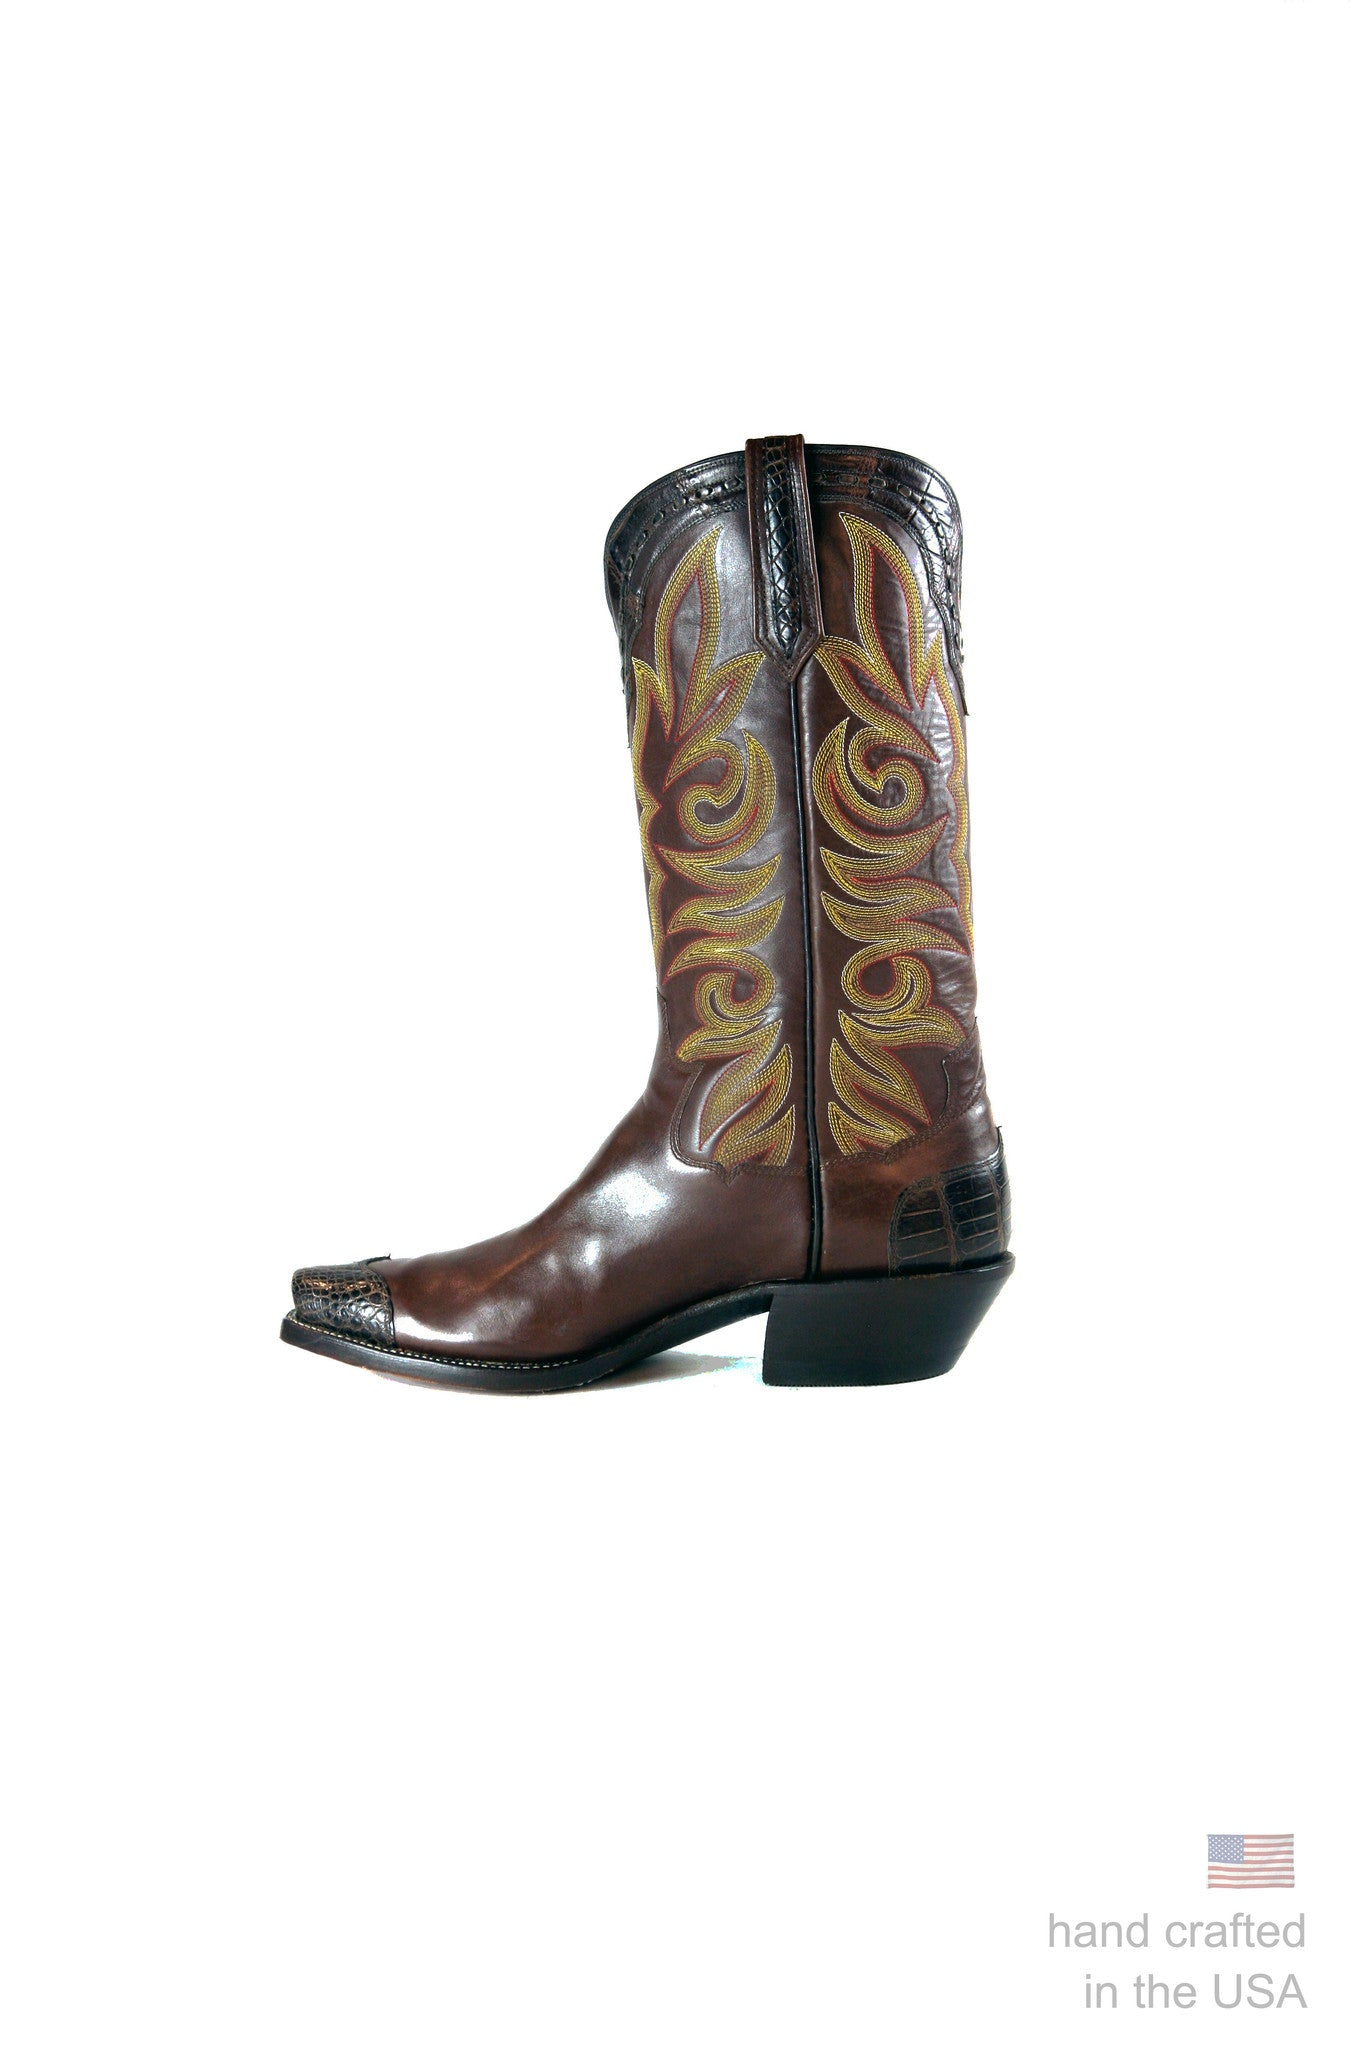 Singles: Boot 0010: Size 14 C